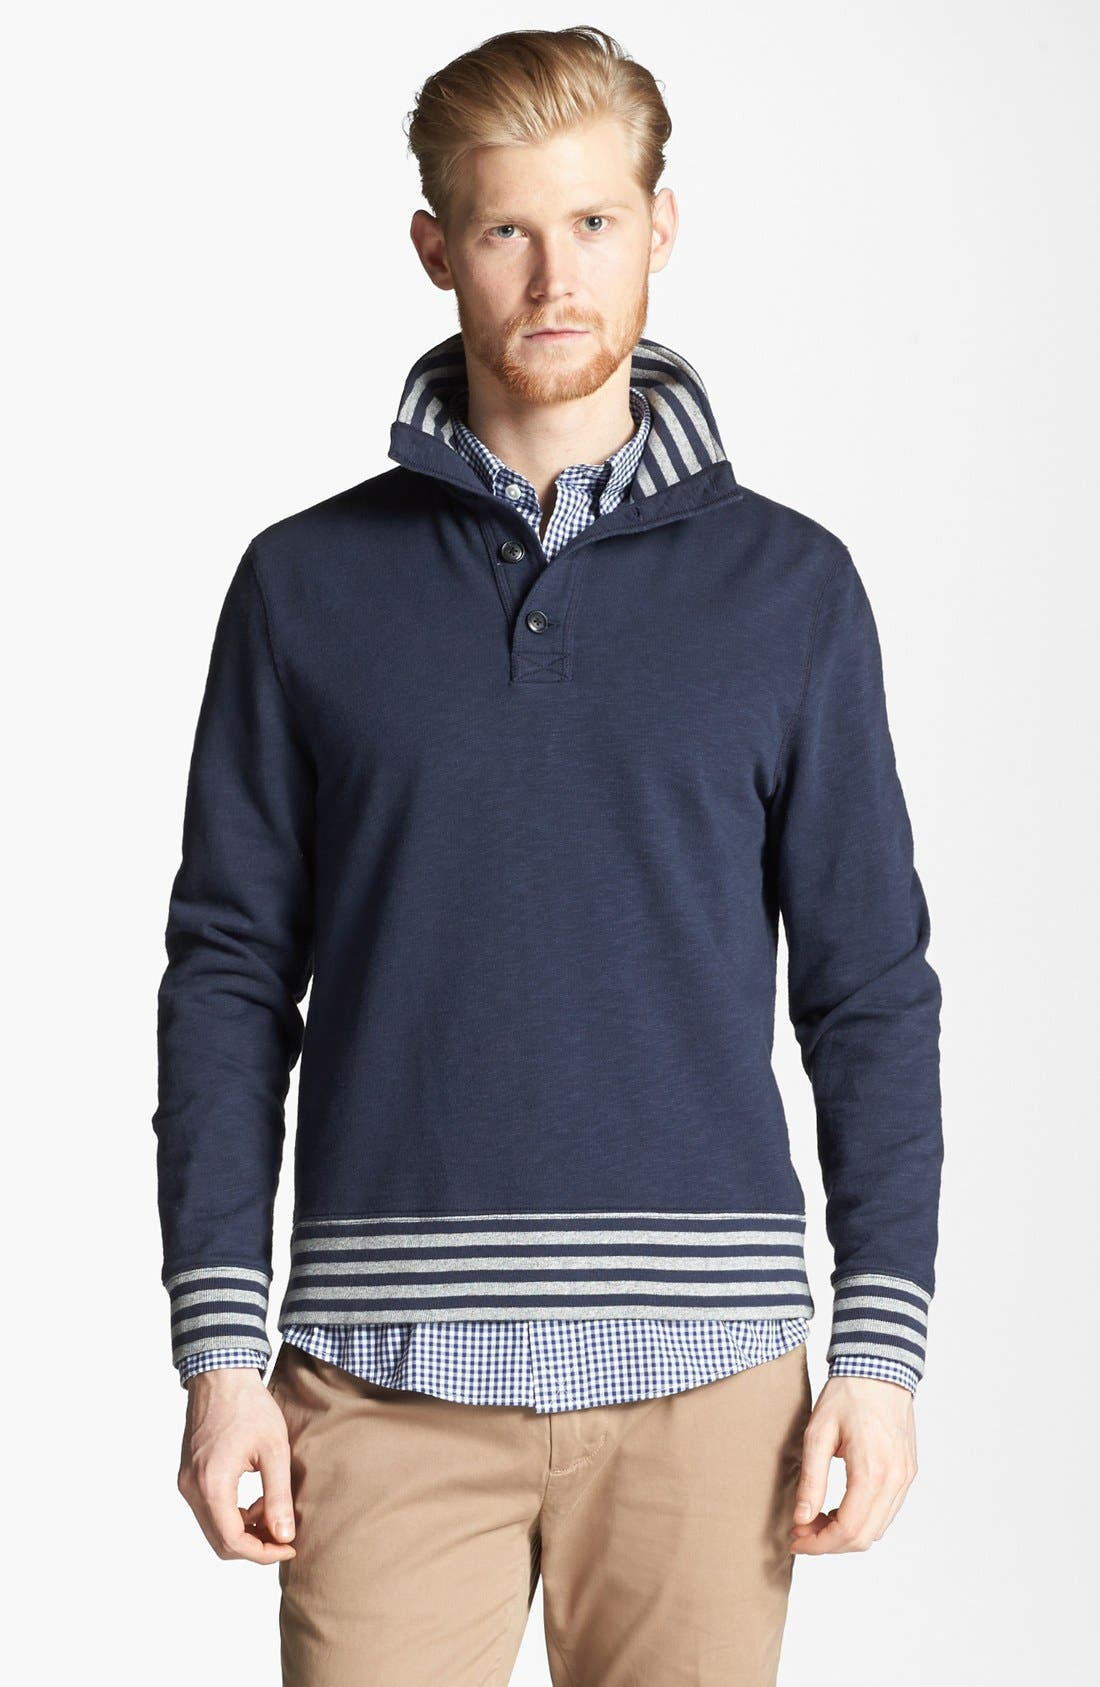 Main Image - Jack Spade 'Connors' Pullover Sweatshirt